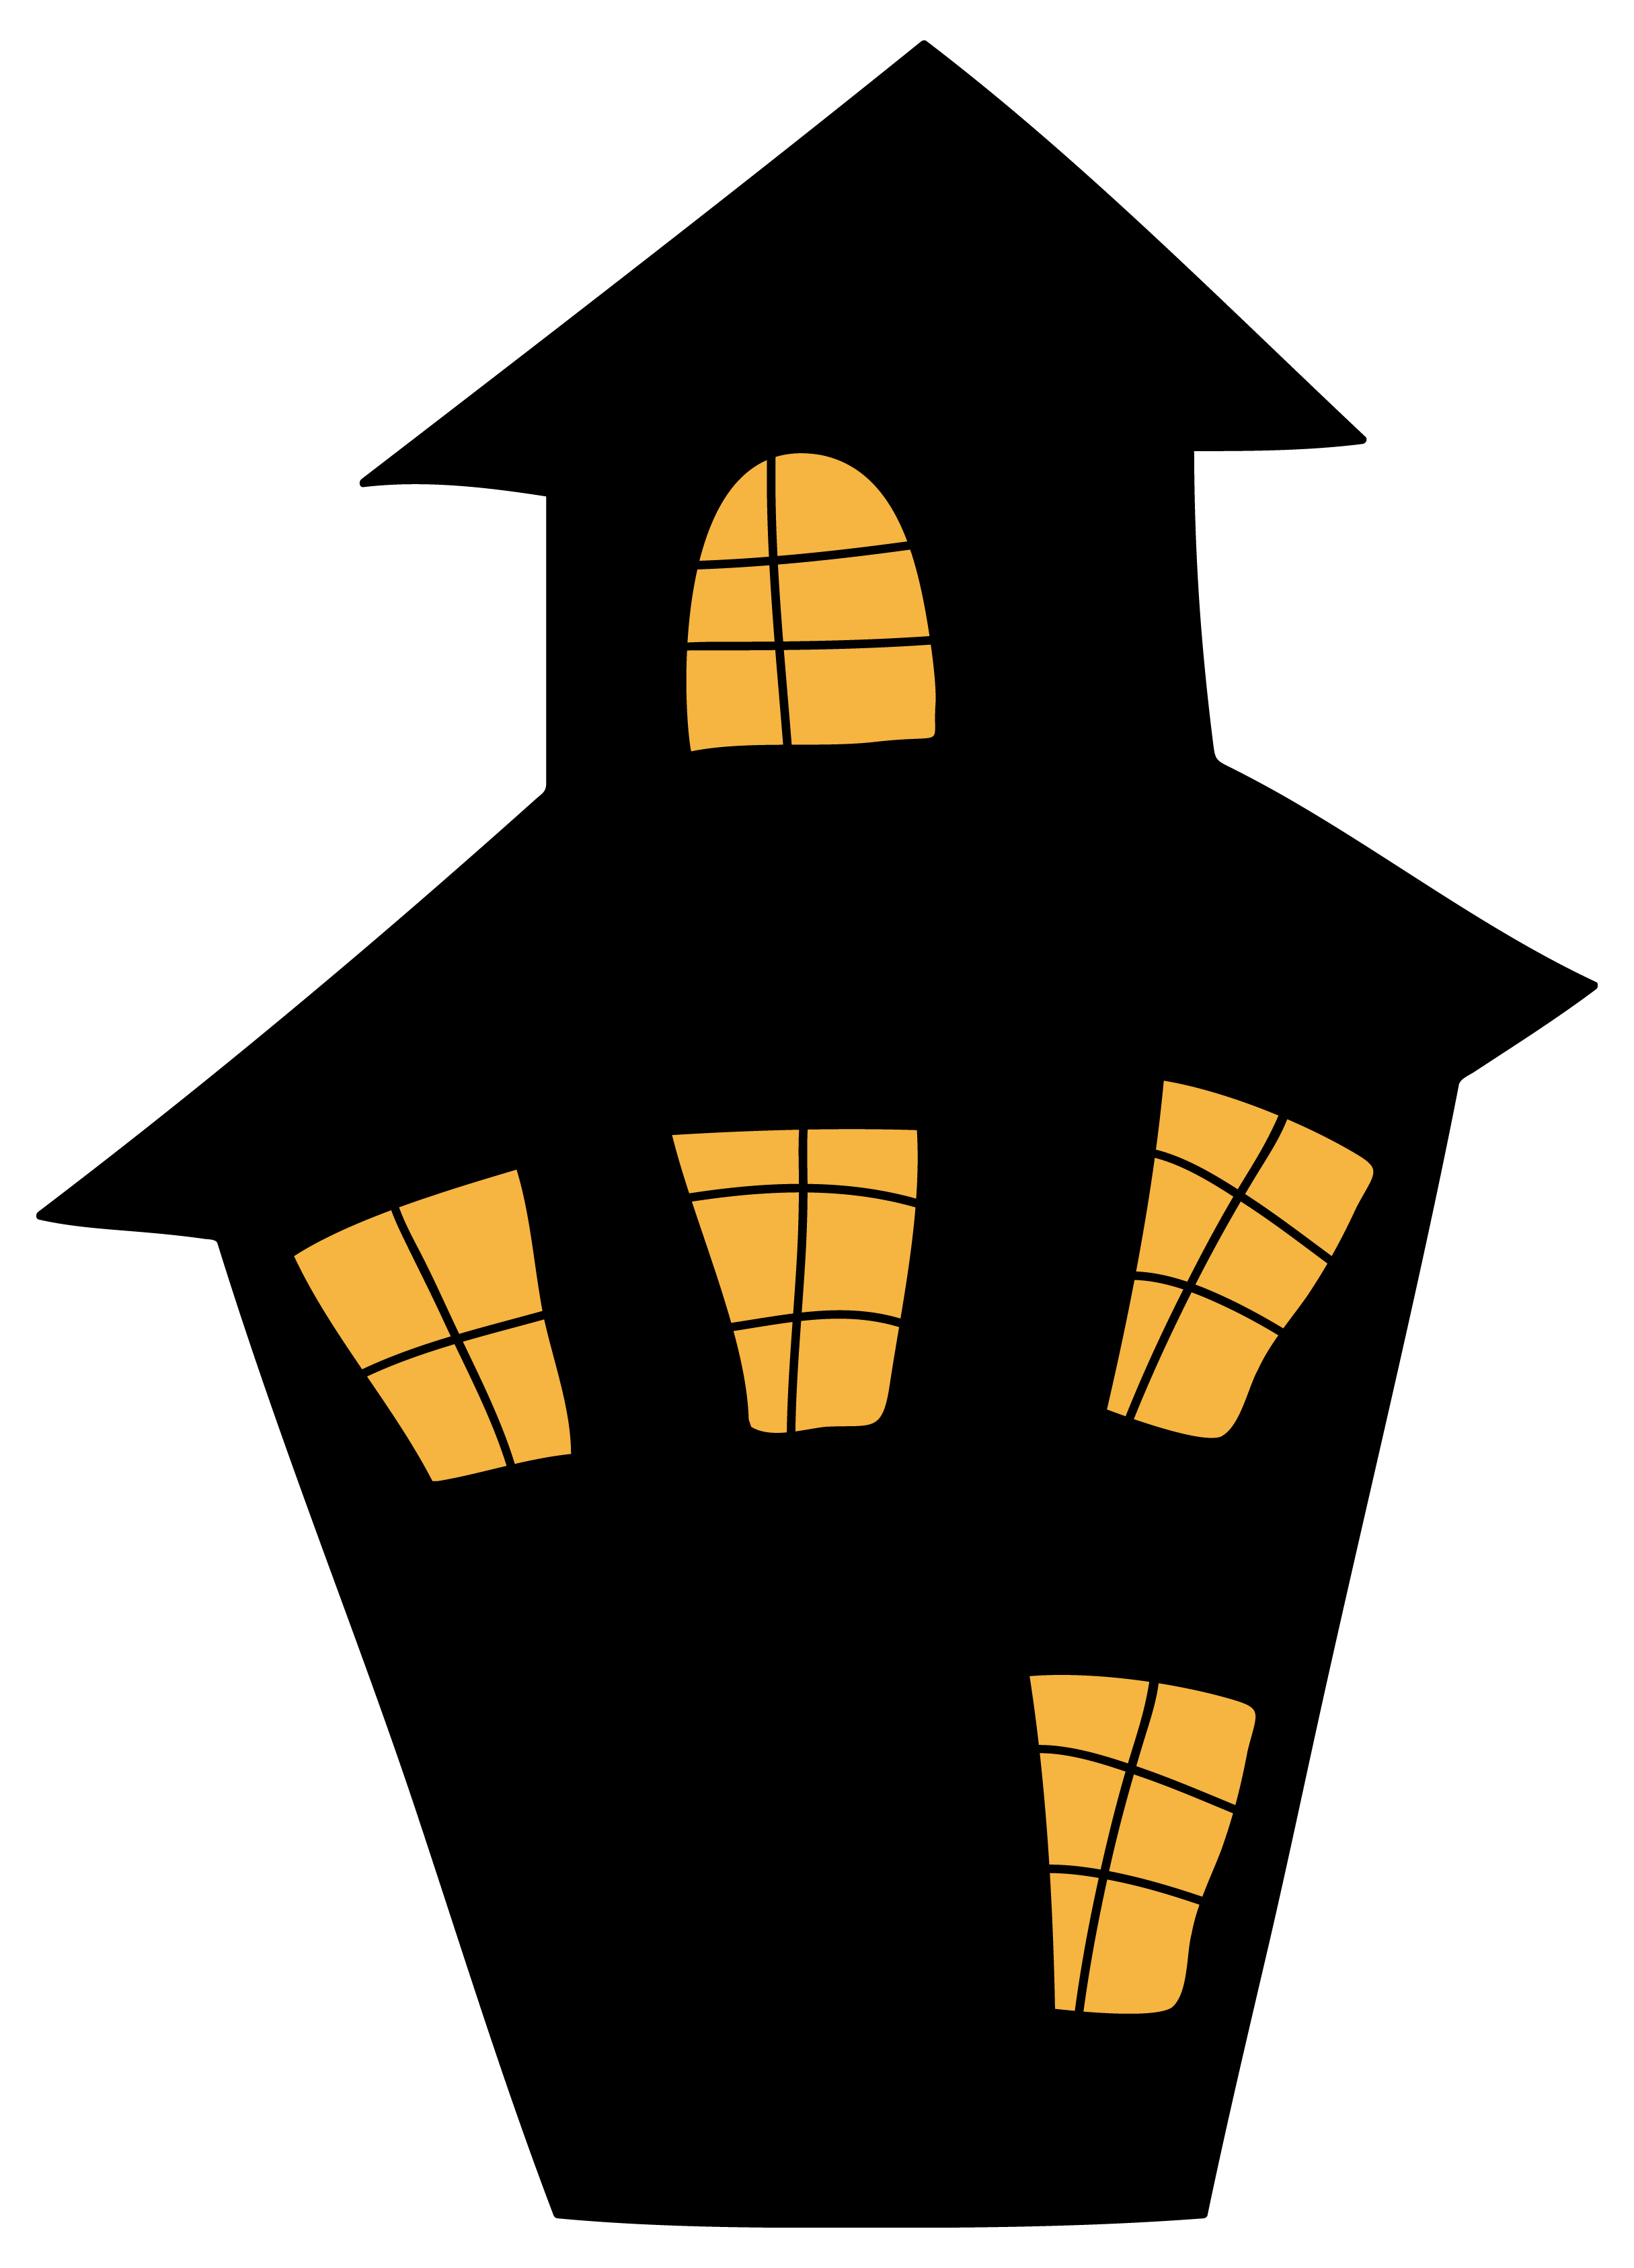 Wood house with chimney clipart vector black and white House Clipart Png. House Clipart Png - Deltasport.co vector black and white